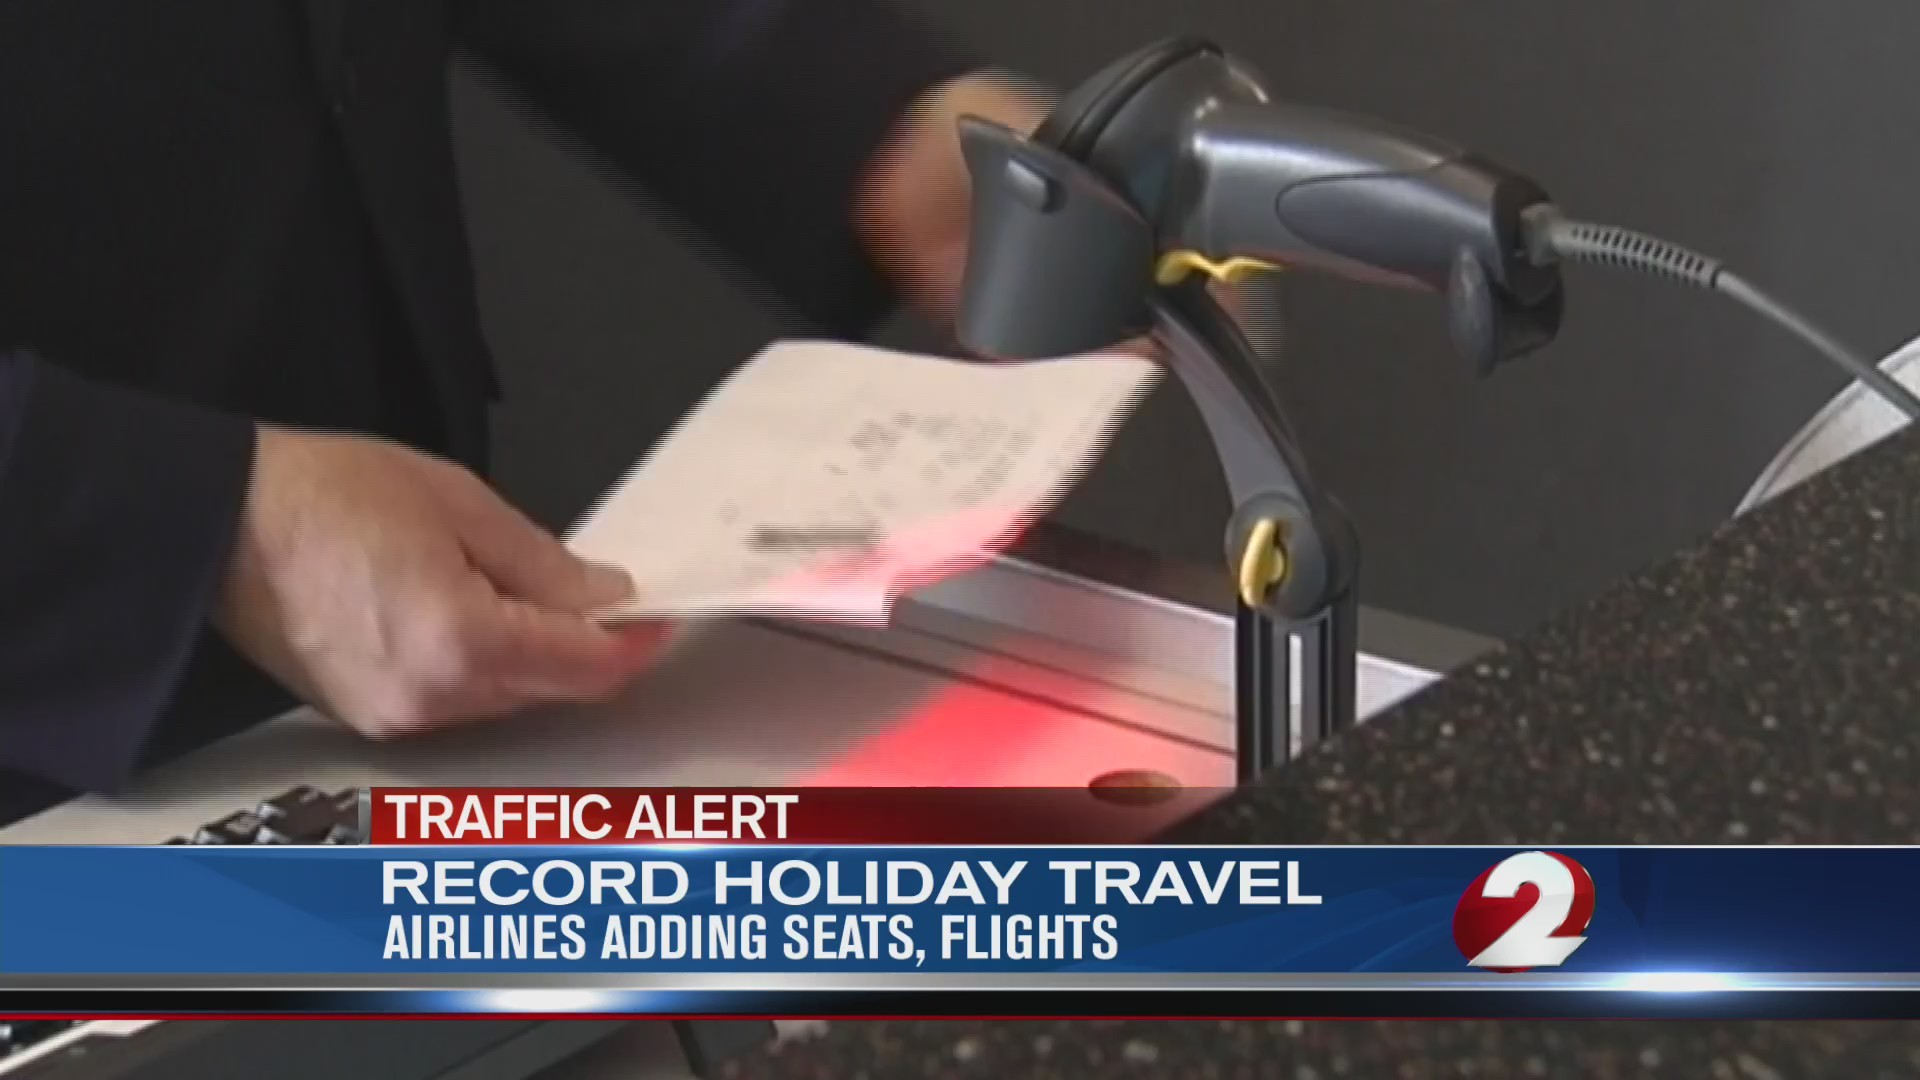 Record holiday travel